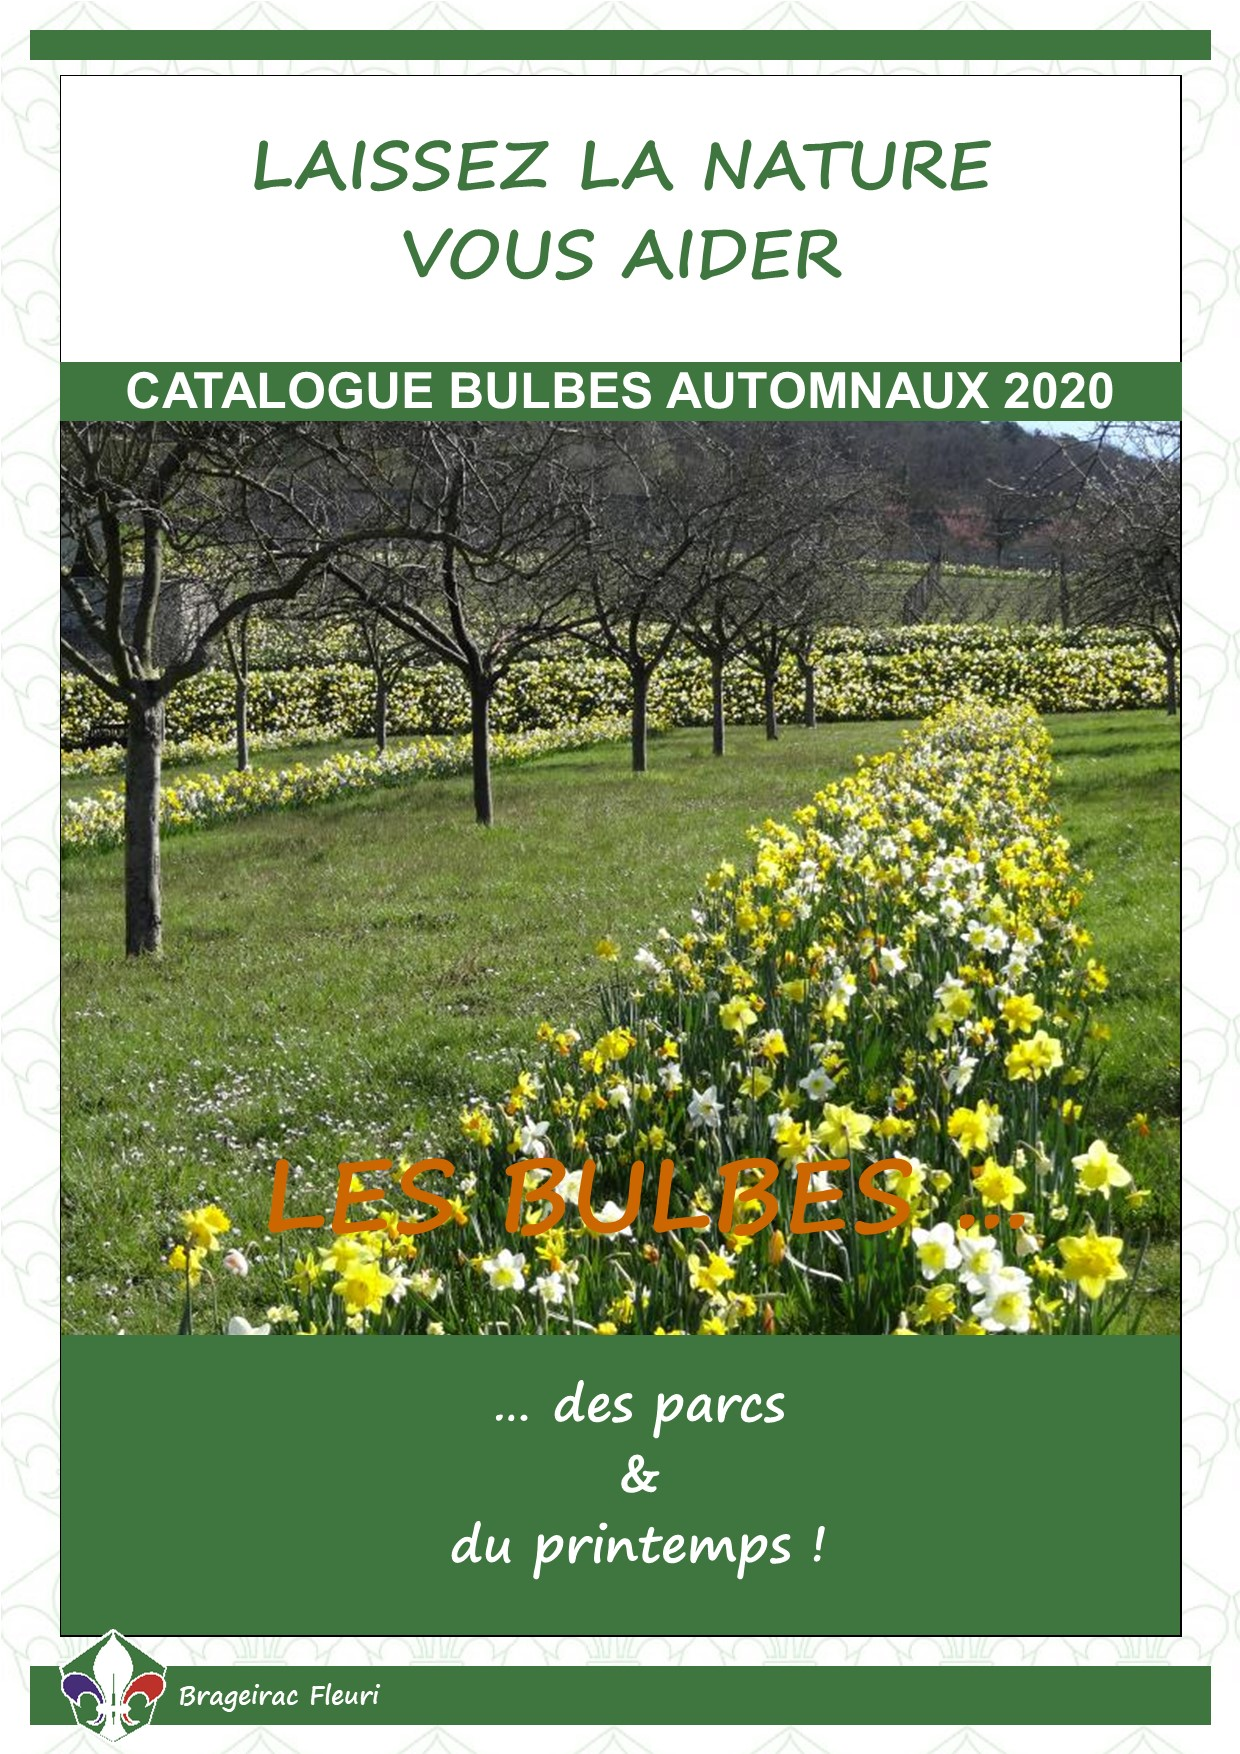 Catalogue bulbes automnaux 2020